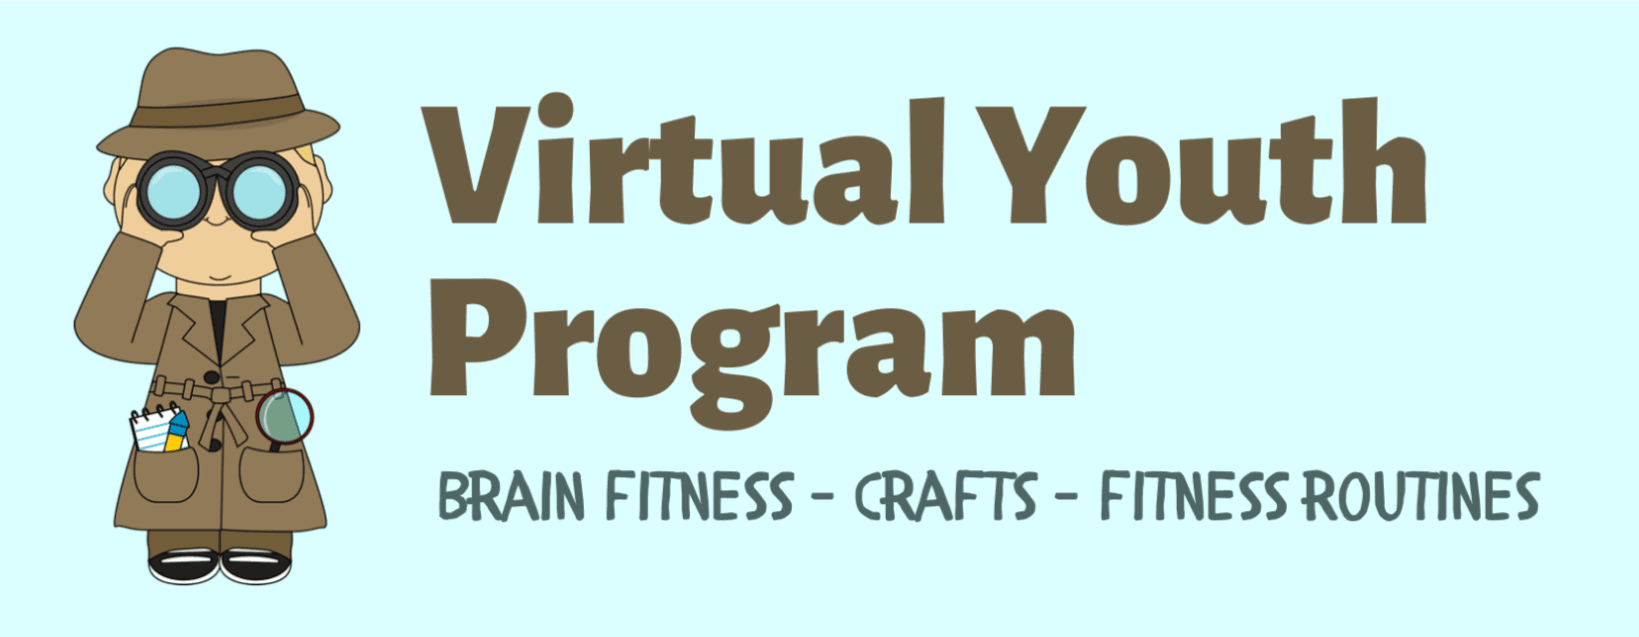 Virtual Youth Program Brain Fitness, Crafts, and Fitness Routines